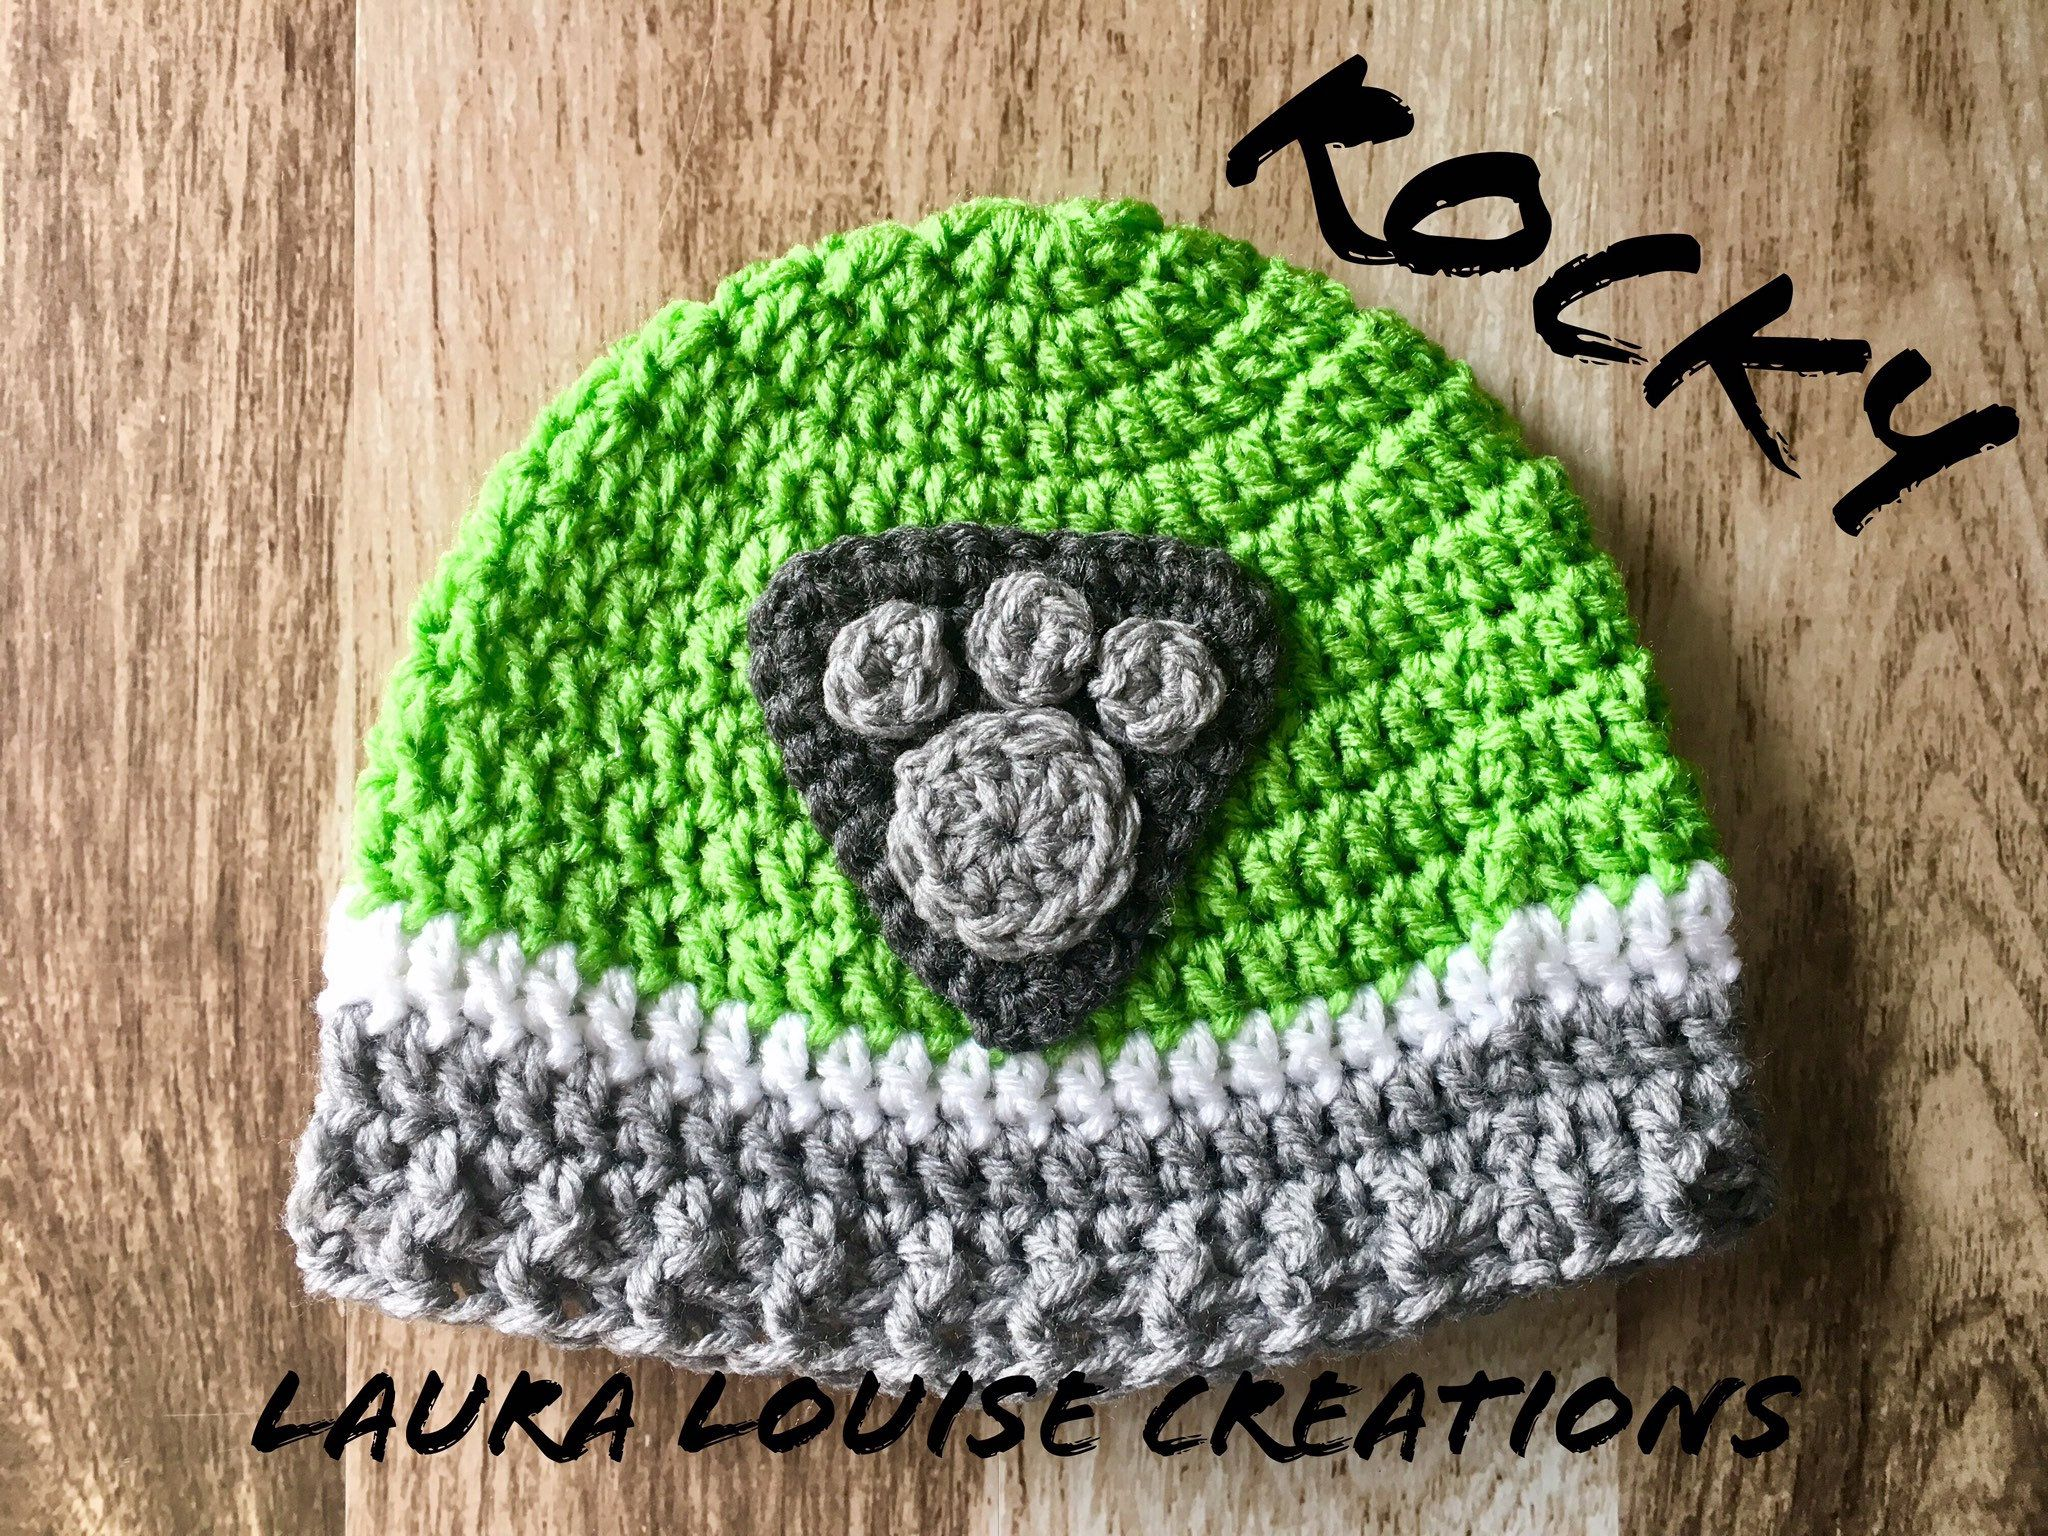 "Rocky   Paw Patrol Hat Pattern  PDF Download  Pattern Only - Hat pattern, Crochet hat pattern, Paw patrol hat, Crochet, Crochet hats, Pattern - Do you have a paw Patrol Lover in your house !  Have your little pup ""Ready for Action!"" with this cute crochet hat pattern  This hat is handcrafted and designed with comfort and warmth in mind   All patterns written in standard US terms  4 sizes toddler, child, teen & adult   You can always contact me if you have any problems with the pattern  I am happy to help if you have any questions along the way  There is no shipping charge for this item as it is a PDF file and will be sent out within 24 hours of payment  If you don't receive it within 24 hours, please, contact me  Price is for the PATTERN only, not the finished product  These patterns are copyright Laura Louise Creations © so PLEASE DO NOT COPY, SHARE, ADJUST OR RESELL MY PATTERN  I wrote and tested this pattern myself, from beginning to end  It took a lot of time and work, and I would really like to have it remain ""my pattern "" If you have any questions with my patterns please feel free to contact me  Thank you, much love, Laura"